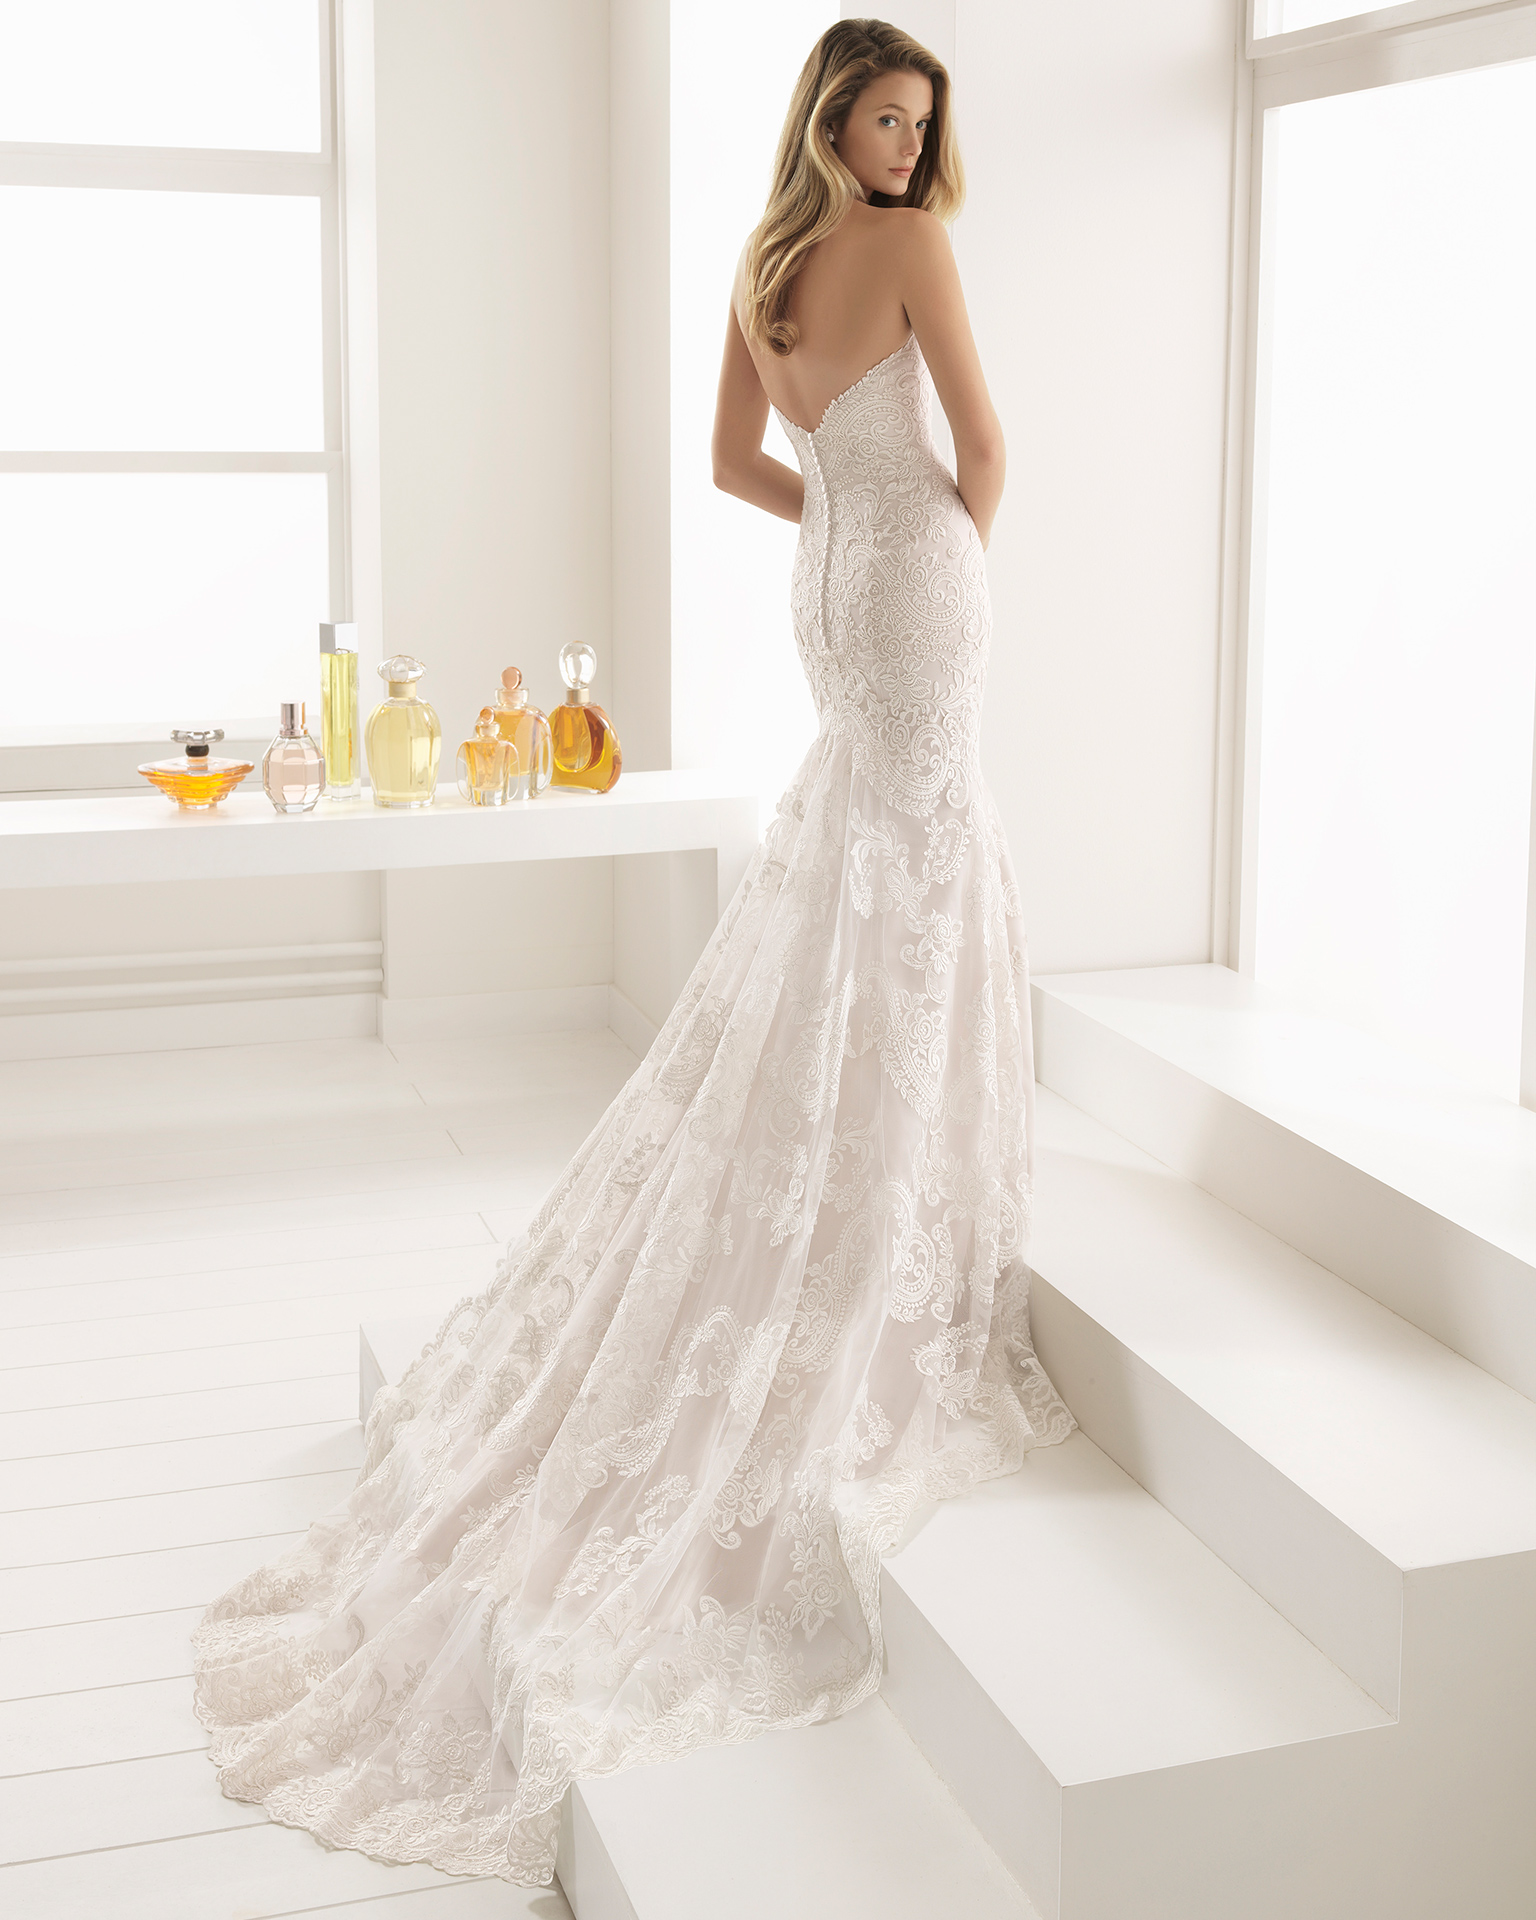 Romantic-style lace wedding dress with sweetheart neckline, in pearl and natural.